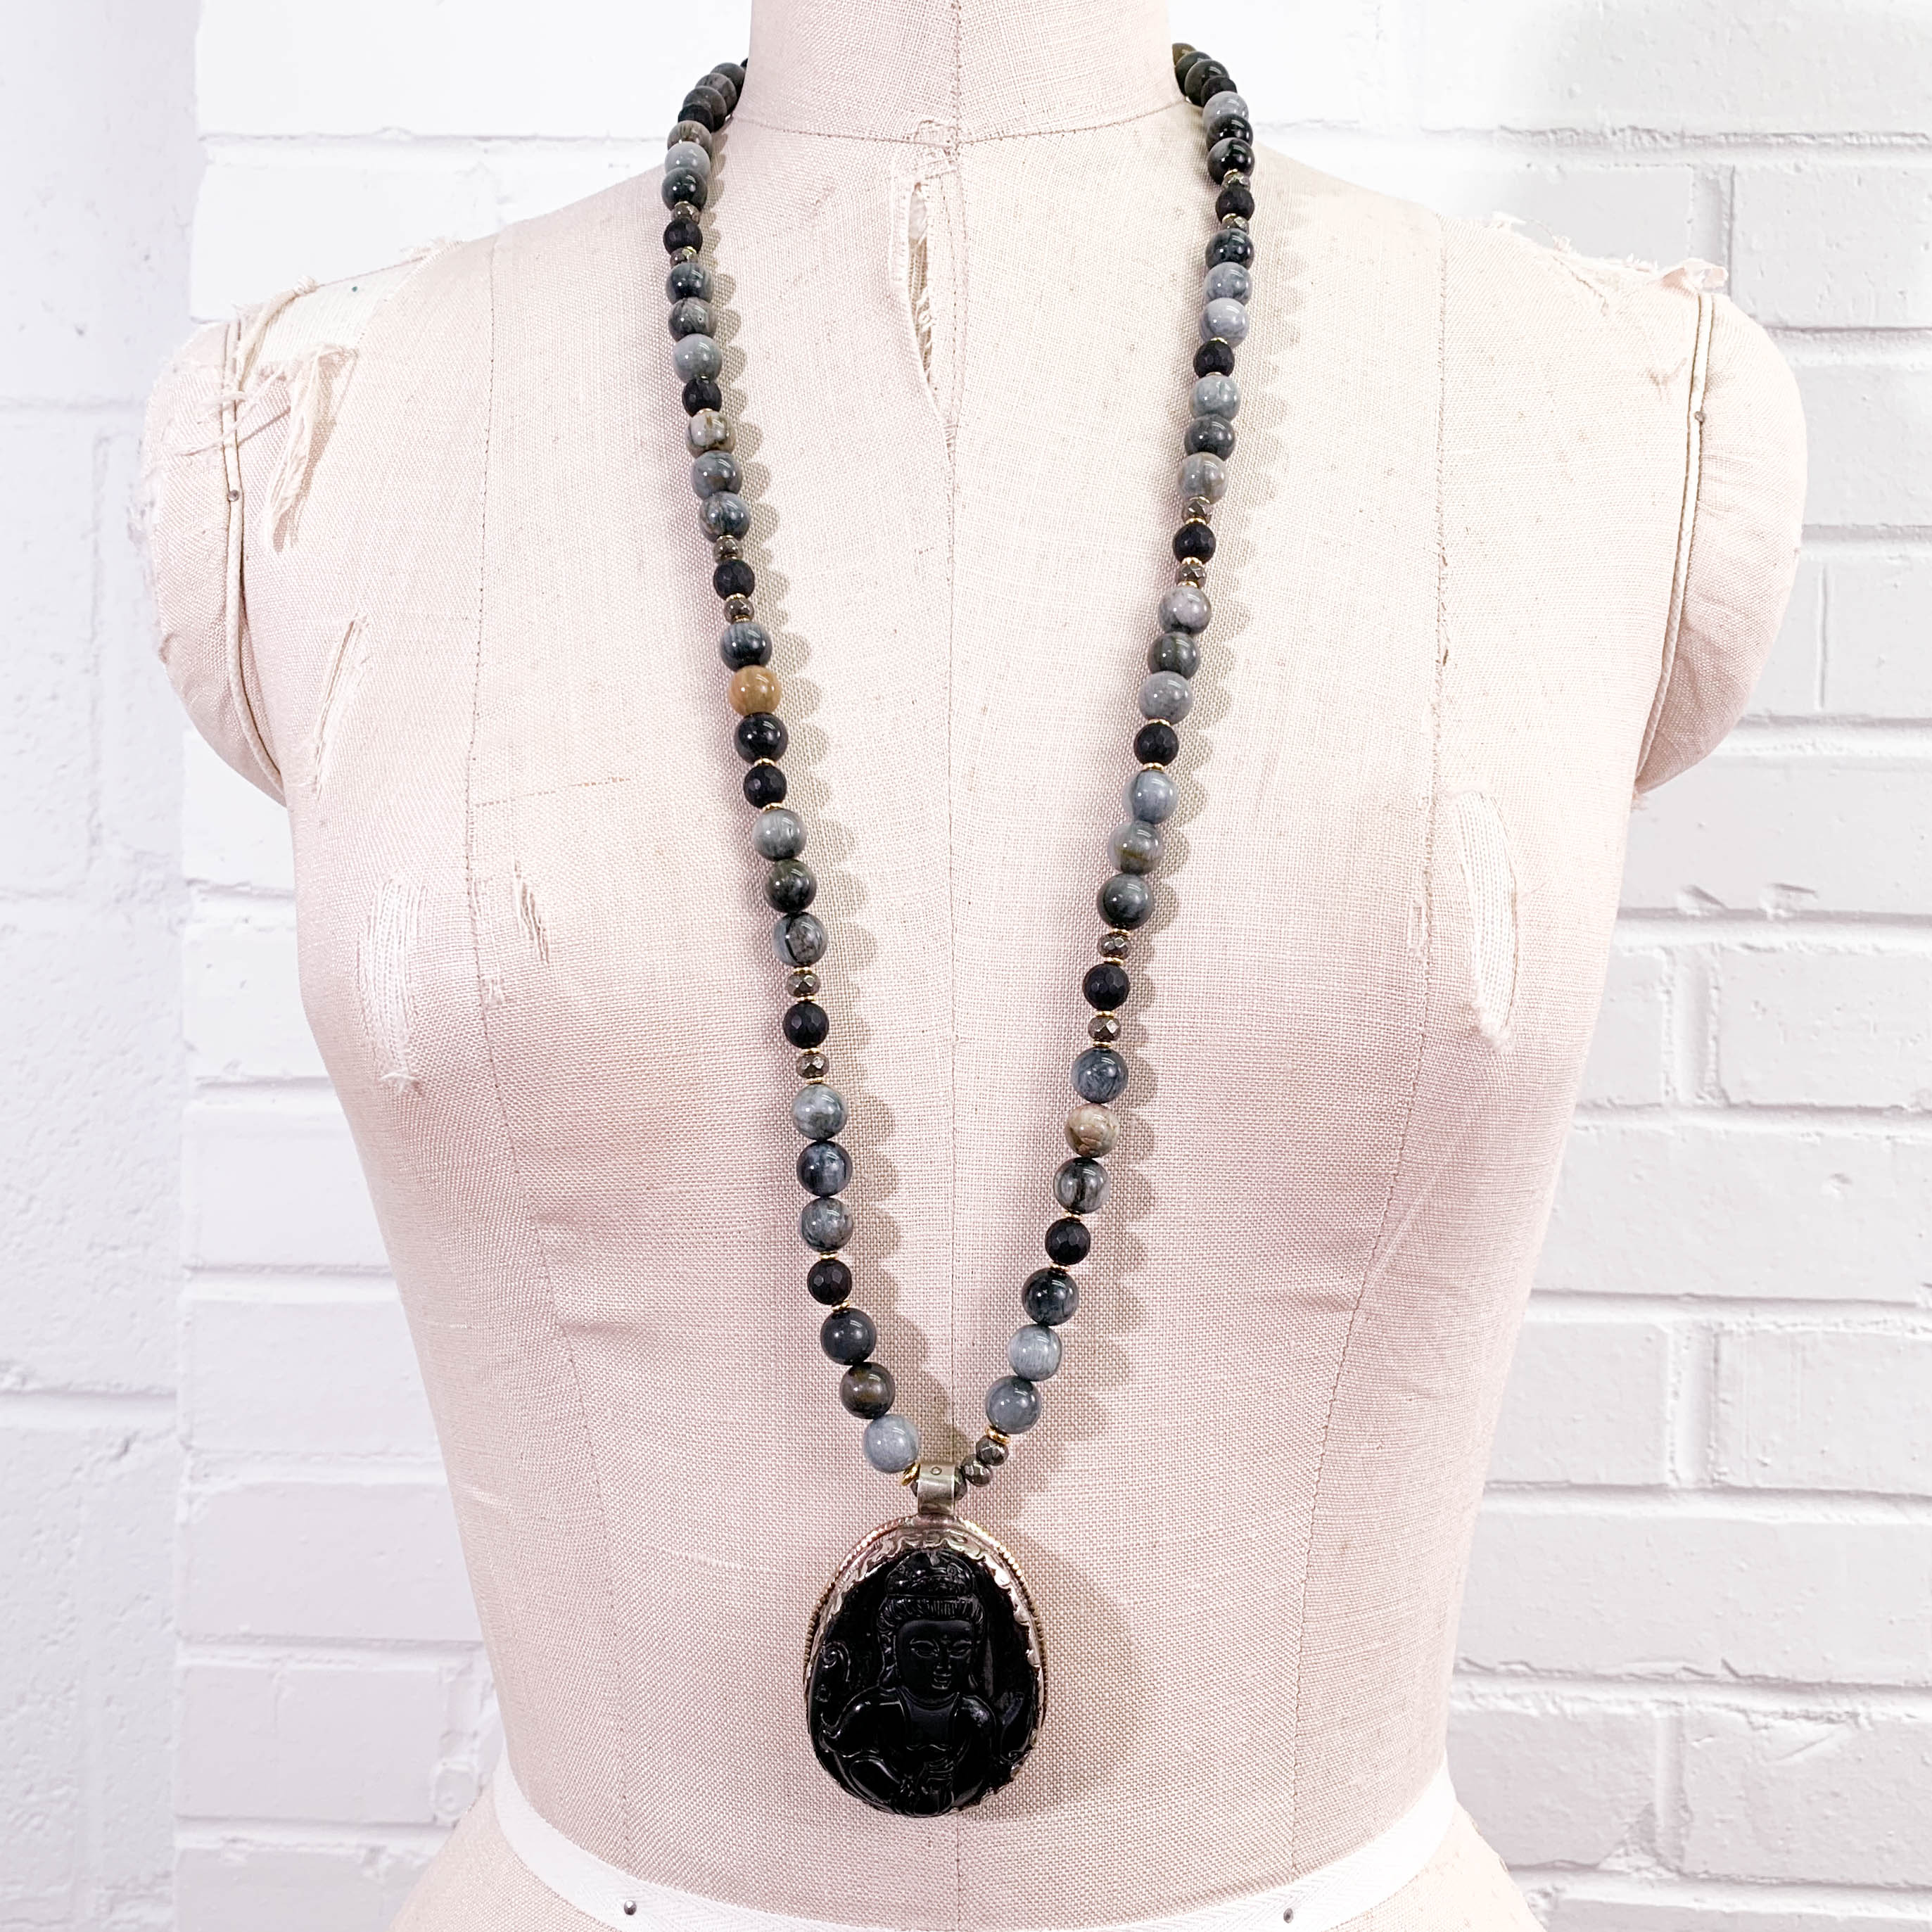 Obsidian Carved Buddha Pendant, Hawk's Eye, & Onyx Necklace